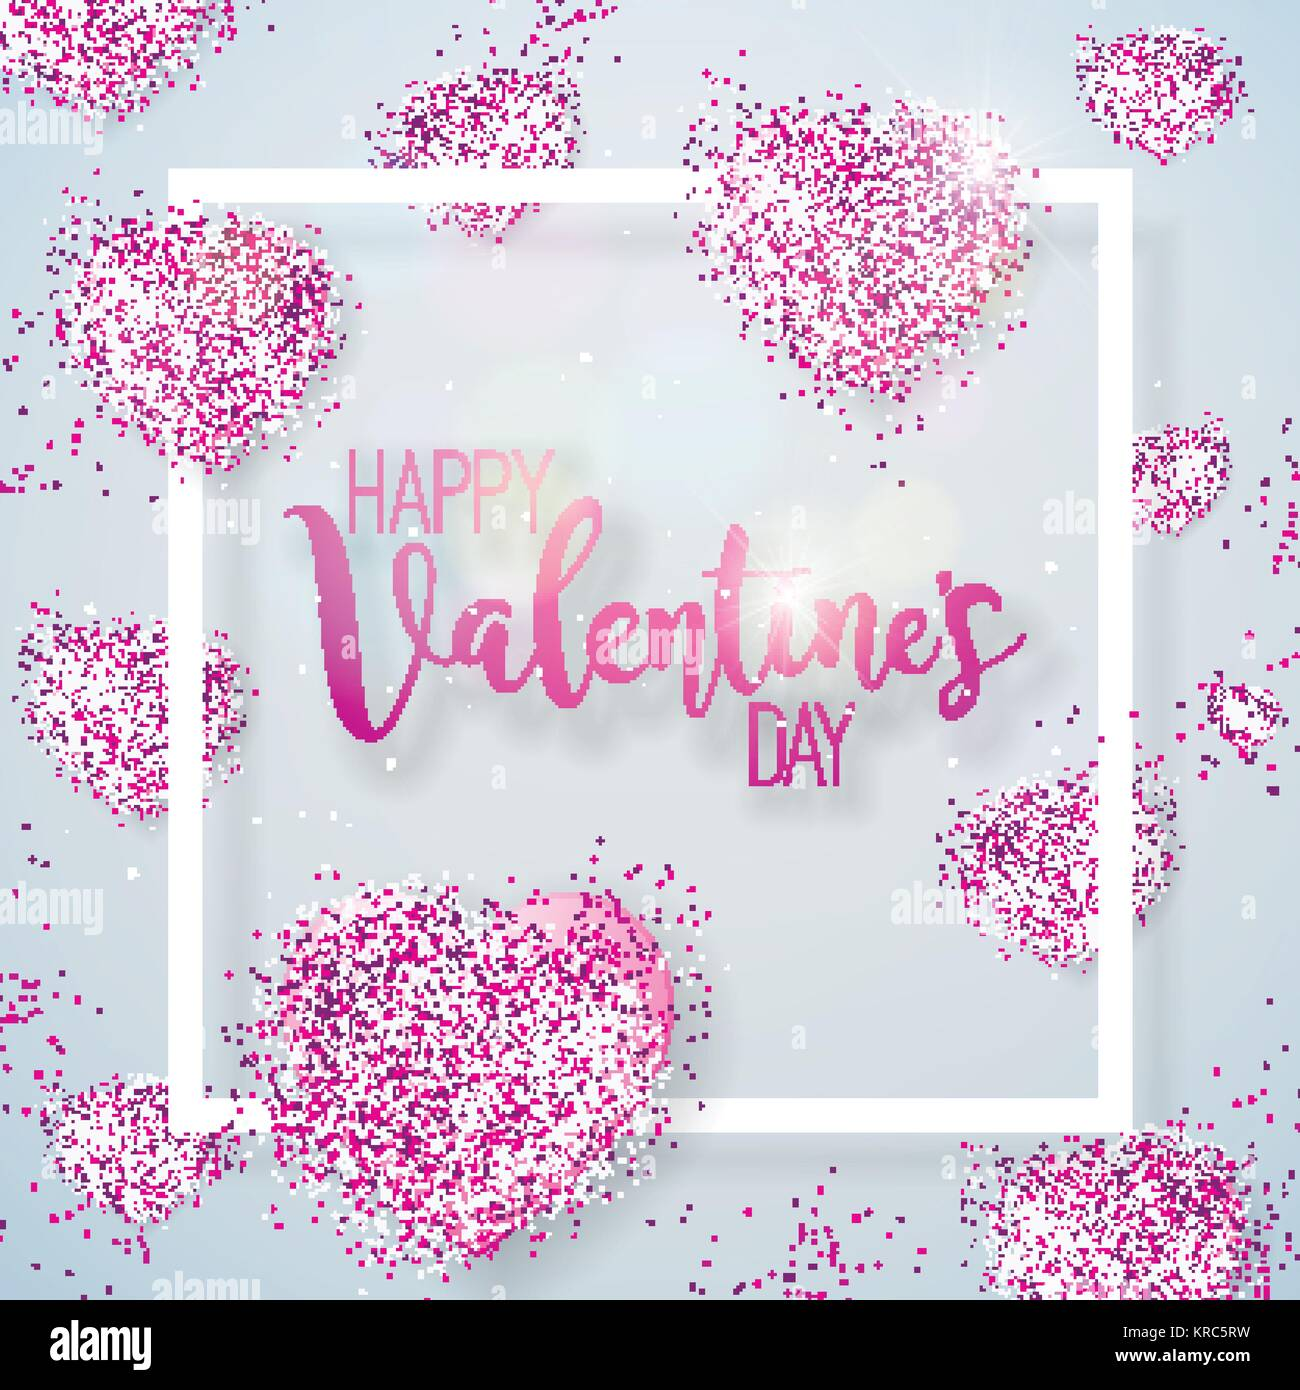 Happy Valentines Day Illustration with Pink Glittered Hearth on ...